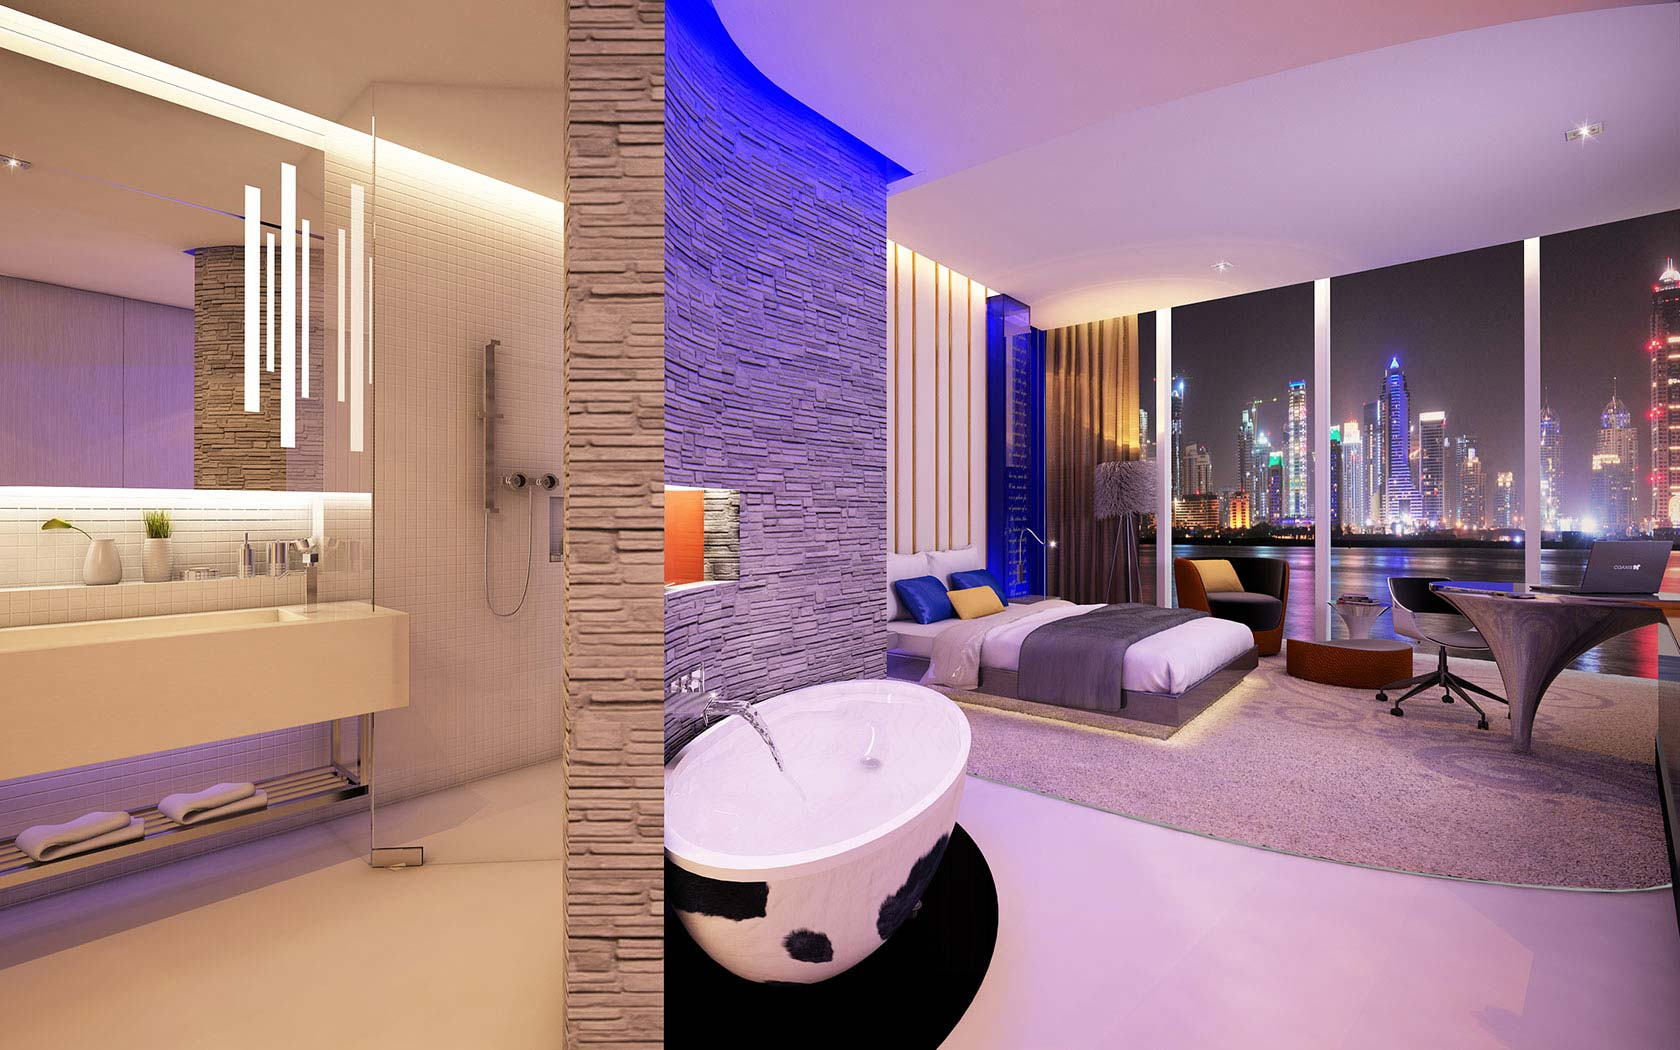 A Combination Of Concealed Architectural And Decorative Lighting Elements Create Mood Relaxation Well Being